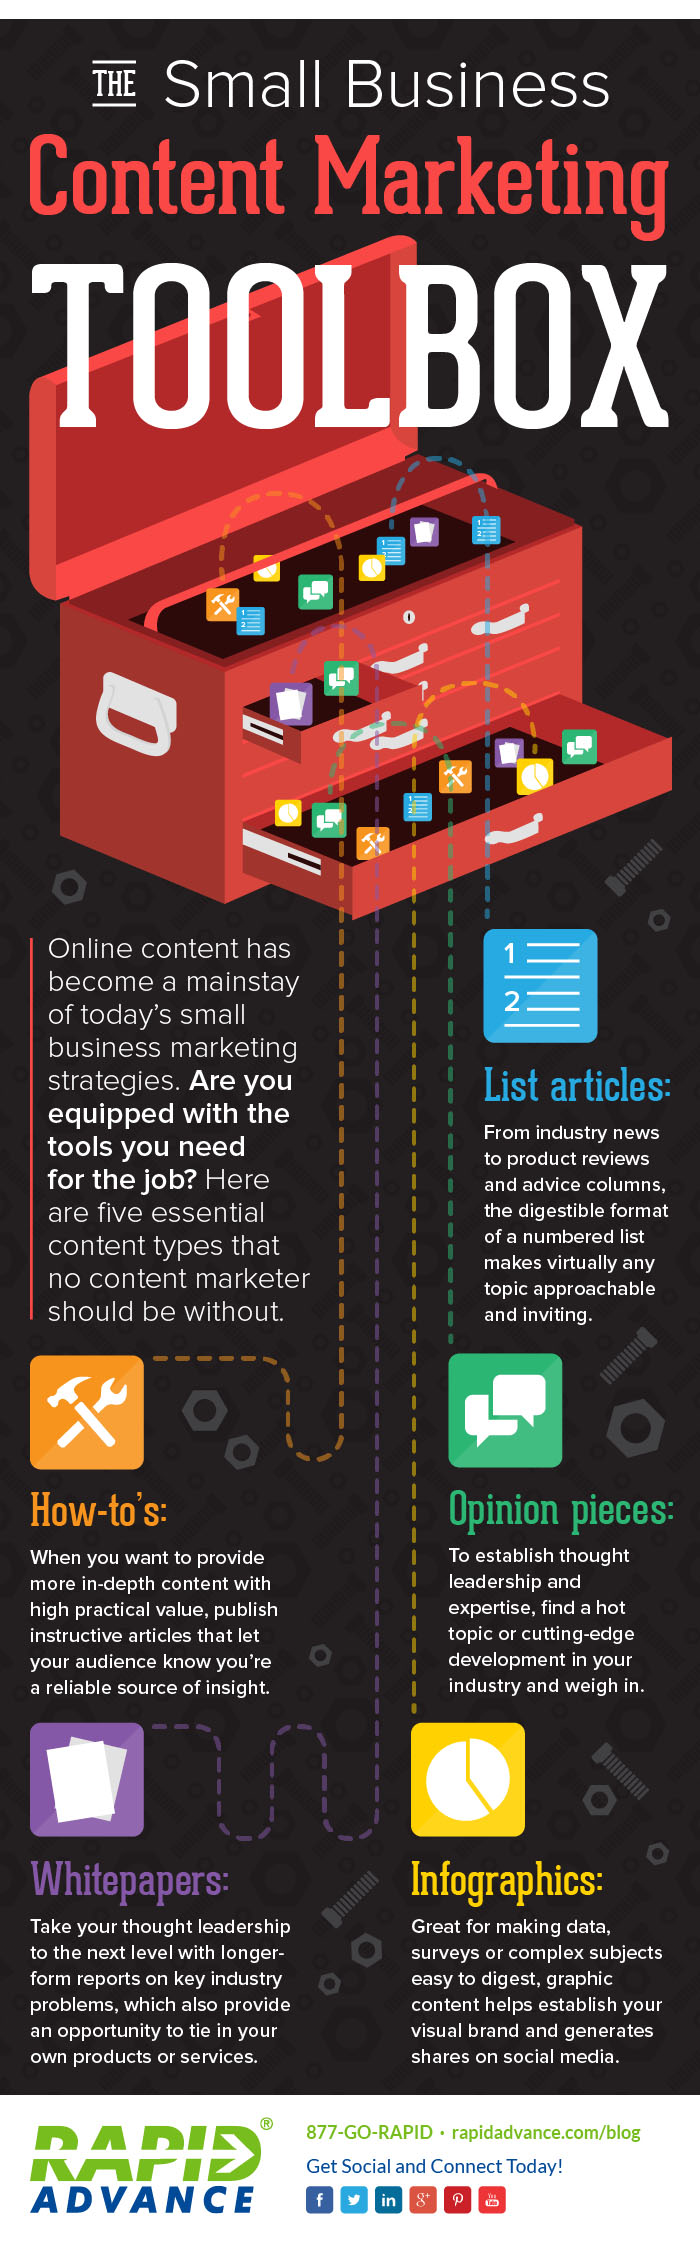 Infographic-The-Small-Business-Content-Marketing-Toolbox